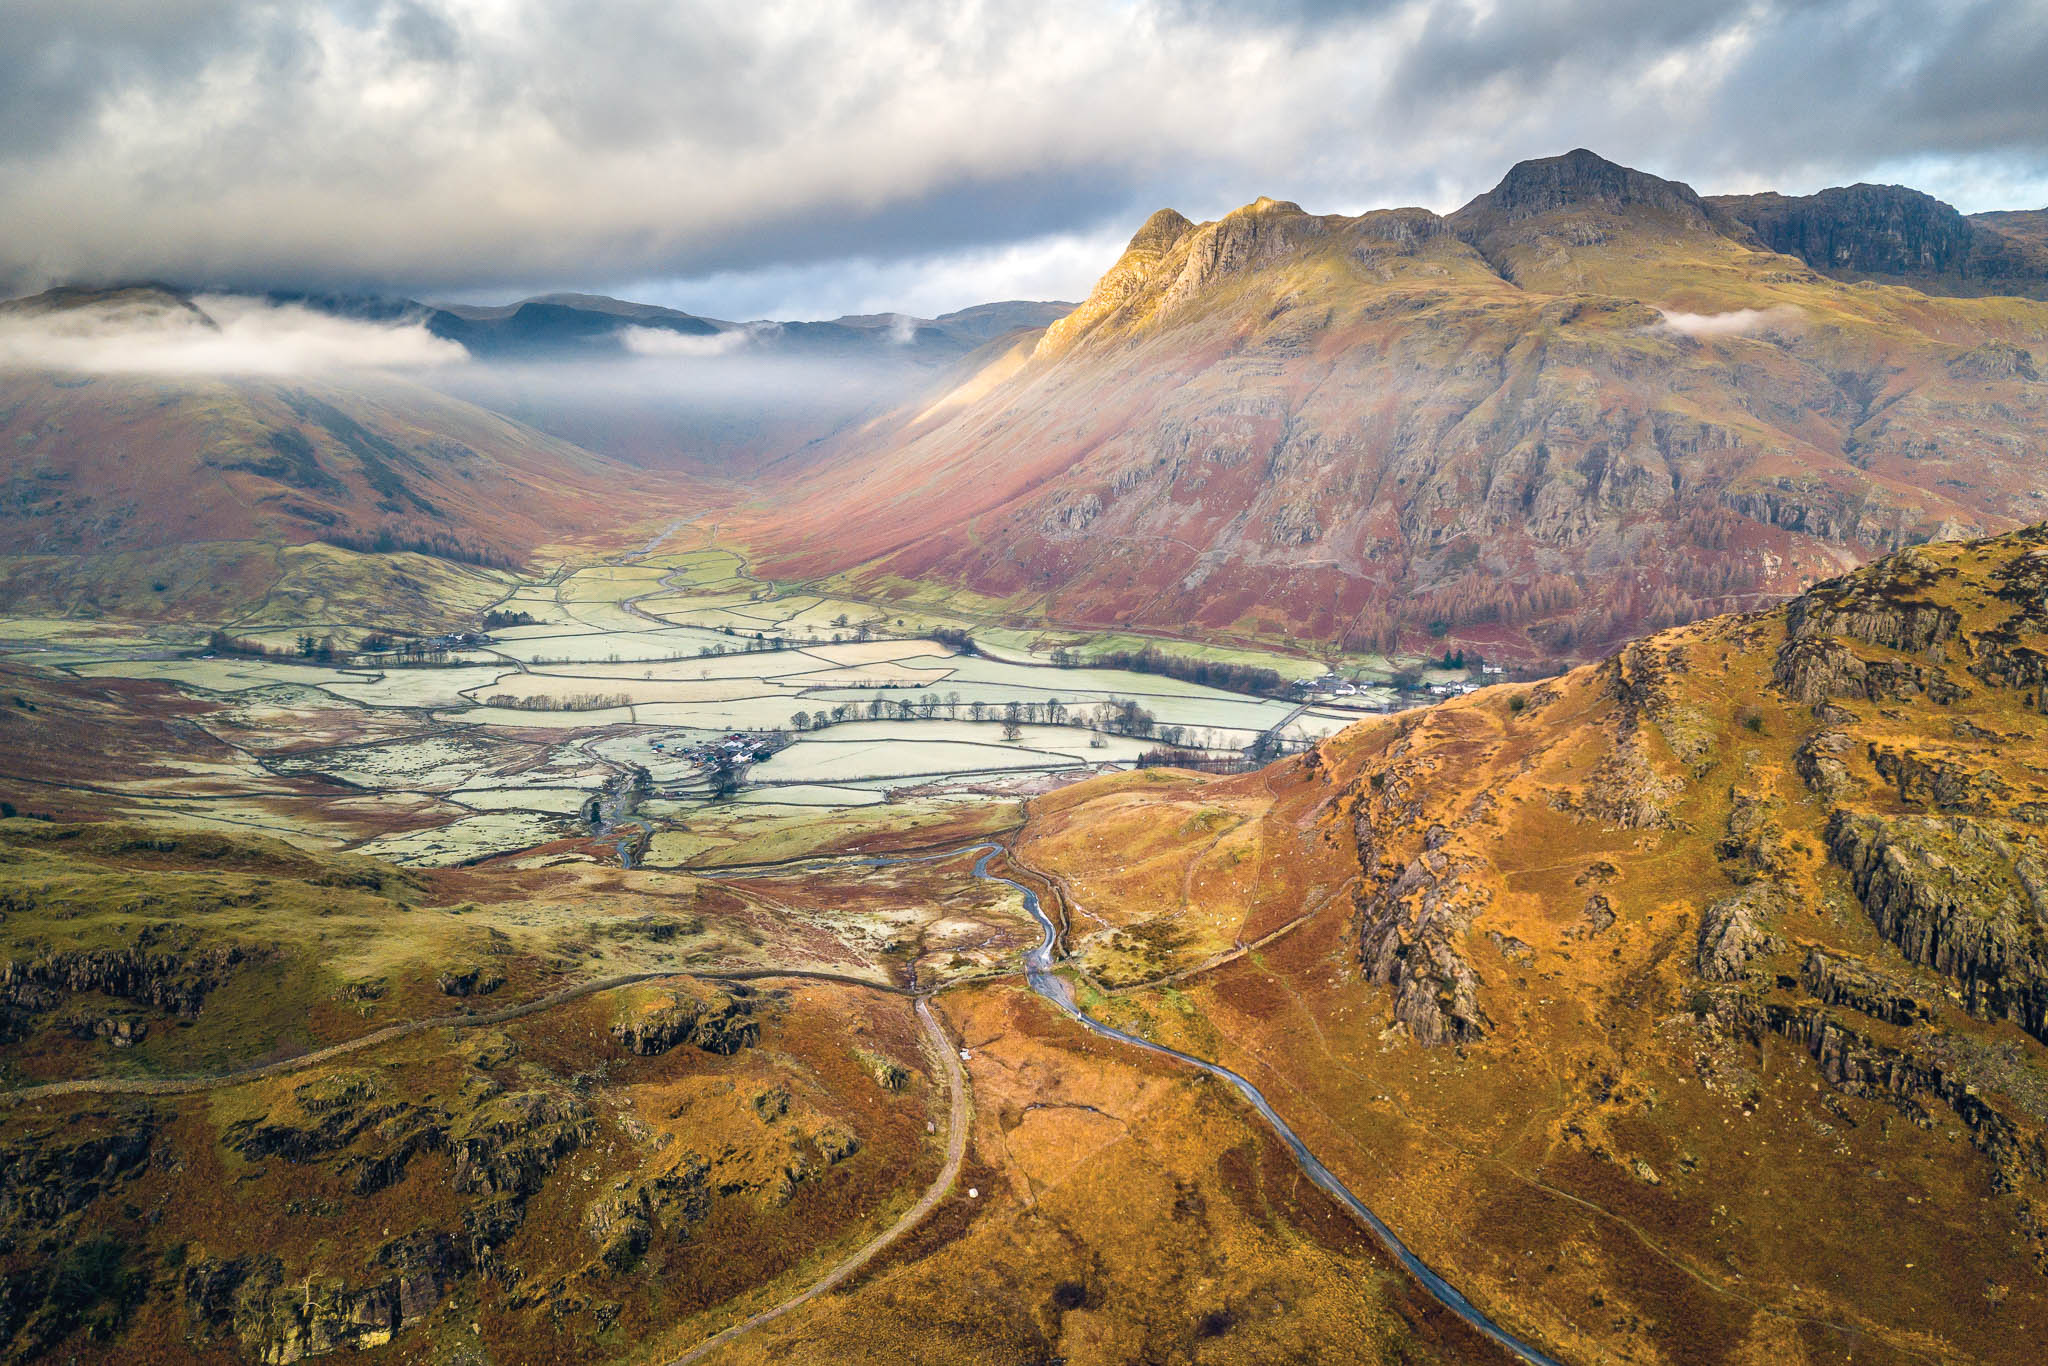 Langdale - This image was taken above Lingmoor in early November, a stunning backdrop and one of the most popular areas to walk in the Lakes, with stunning views reminiscent of the Canadian Rockies